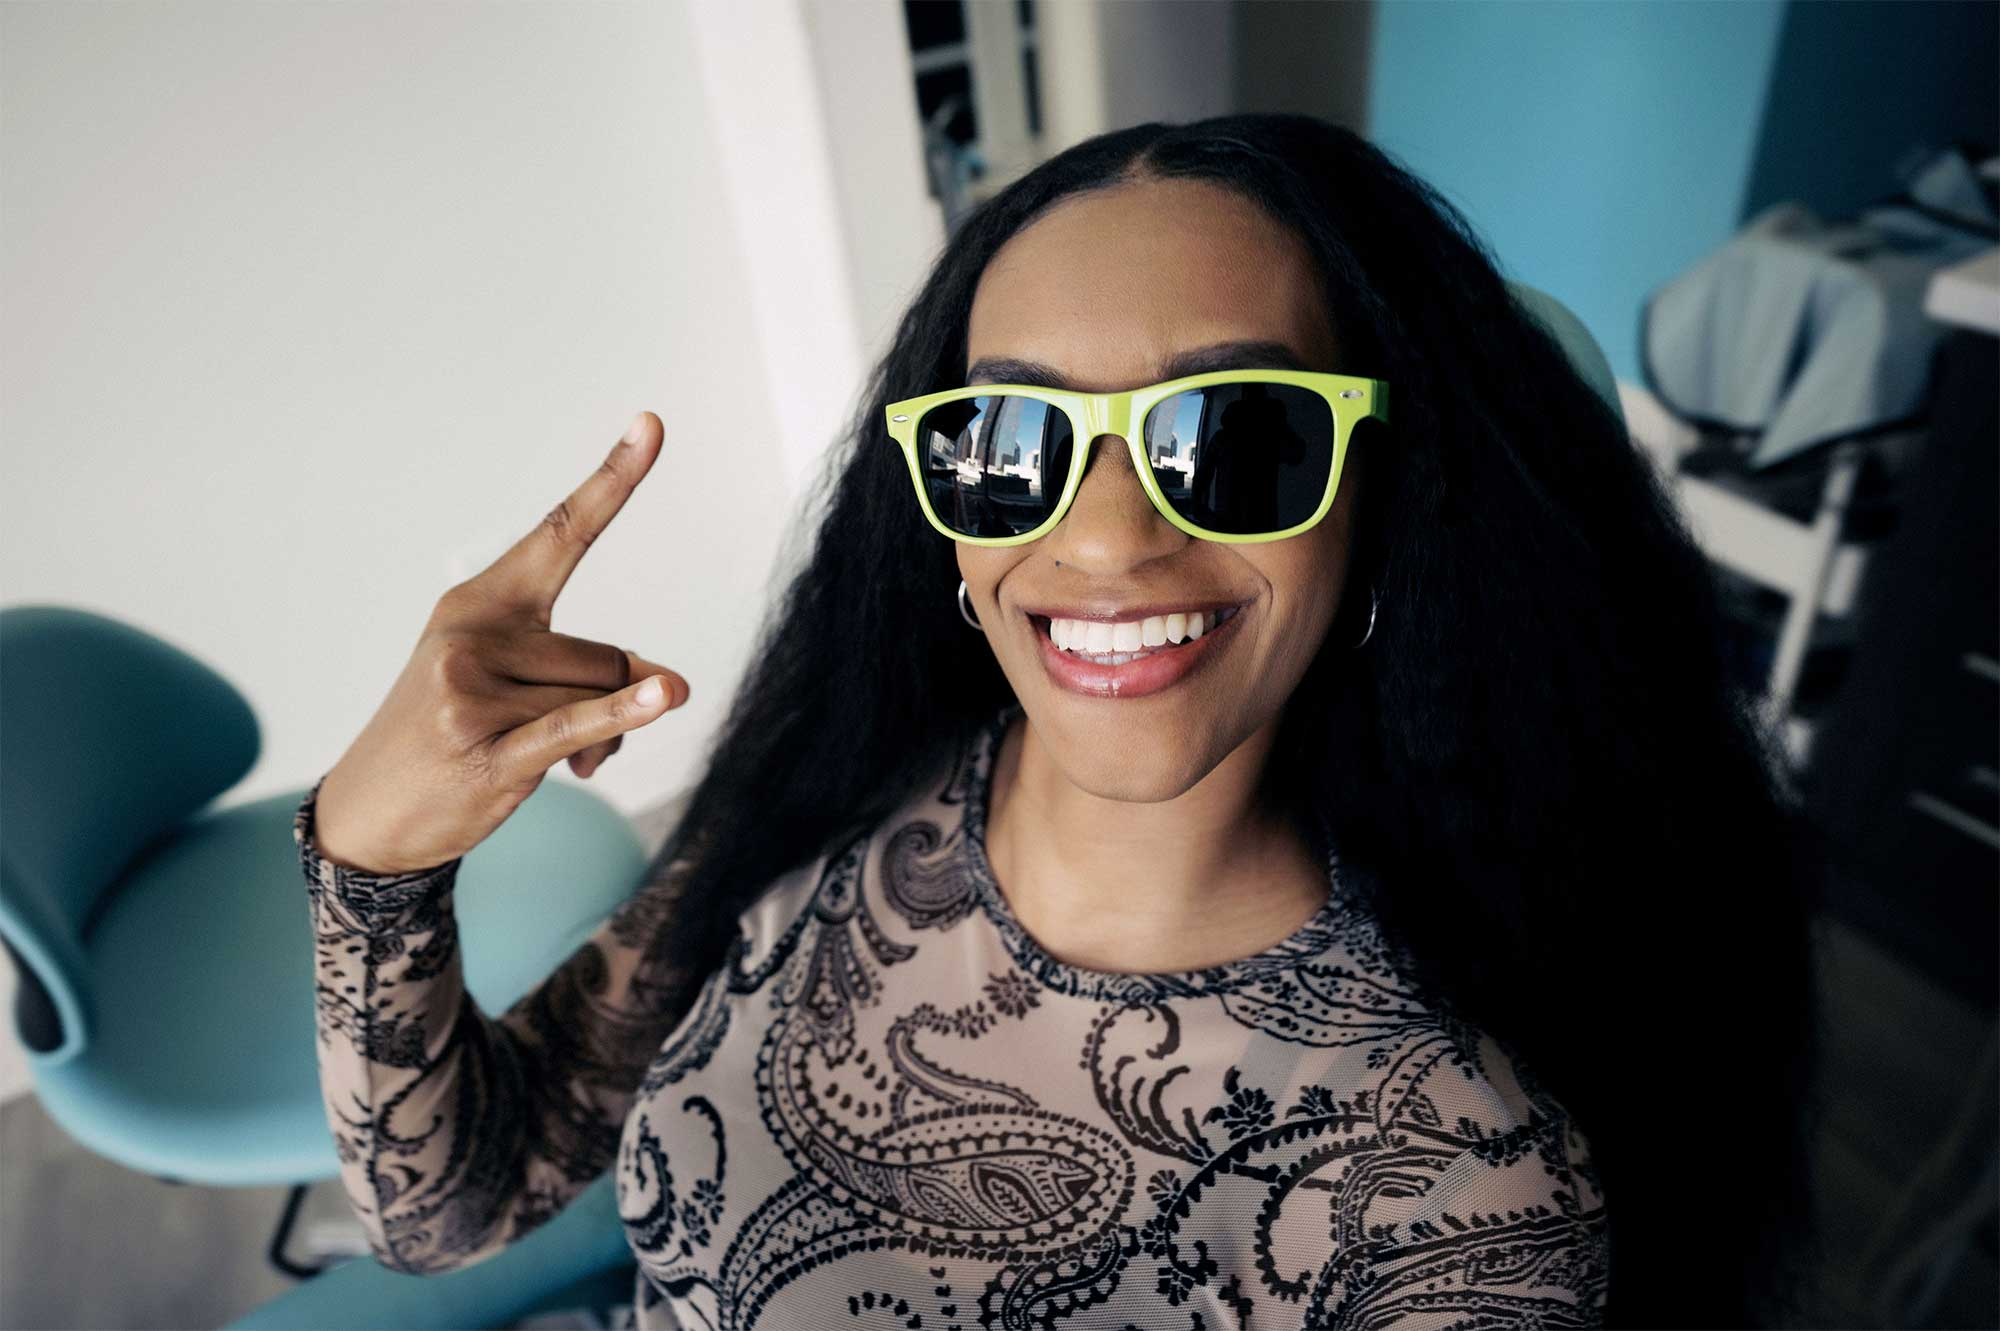 Photo of a smiling dental patient wearing yellow sunglasses